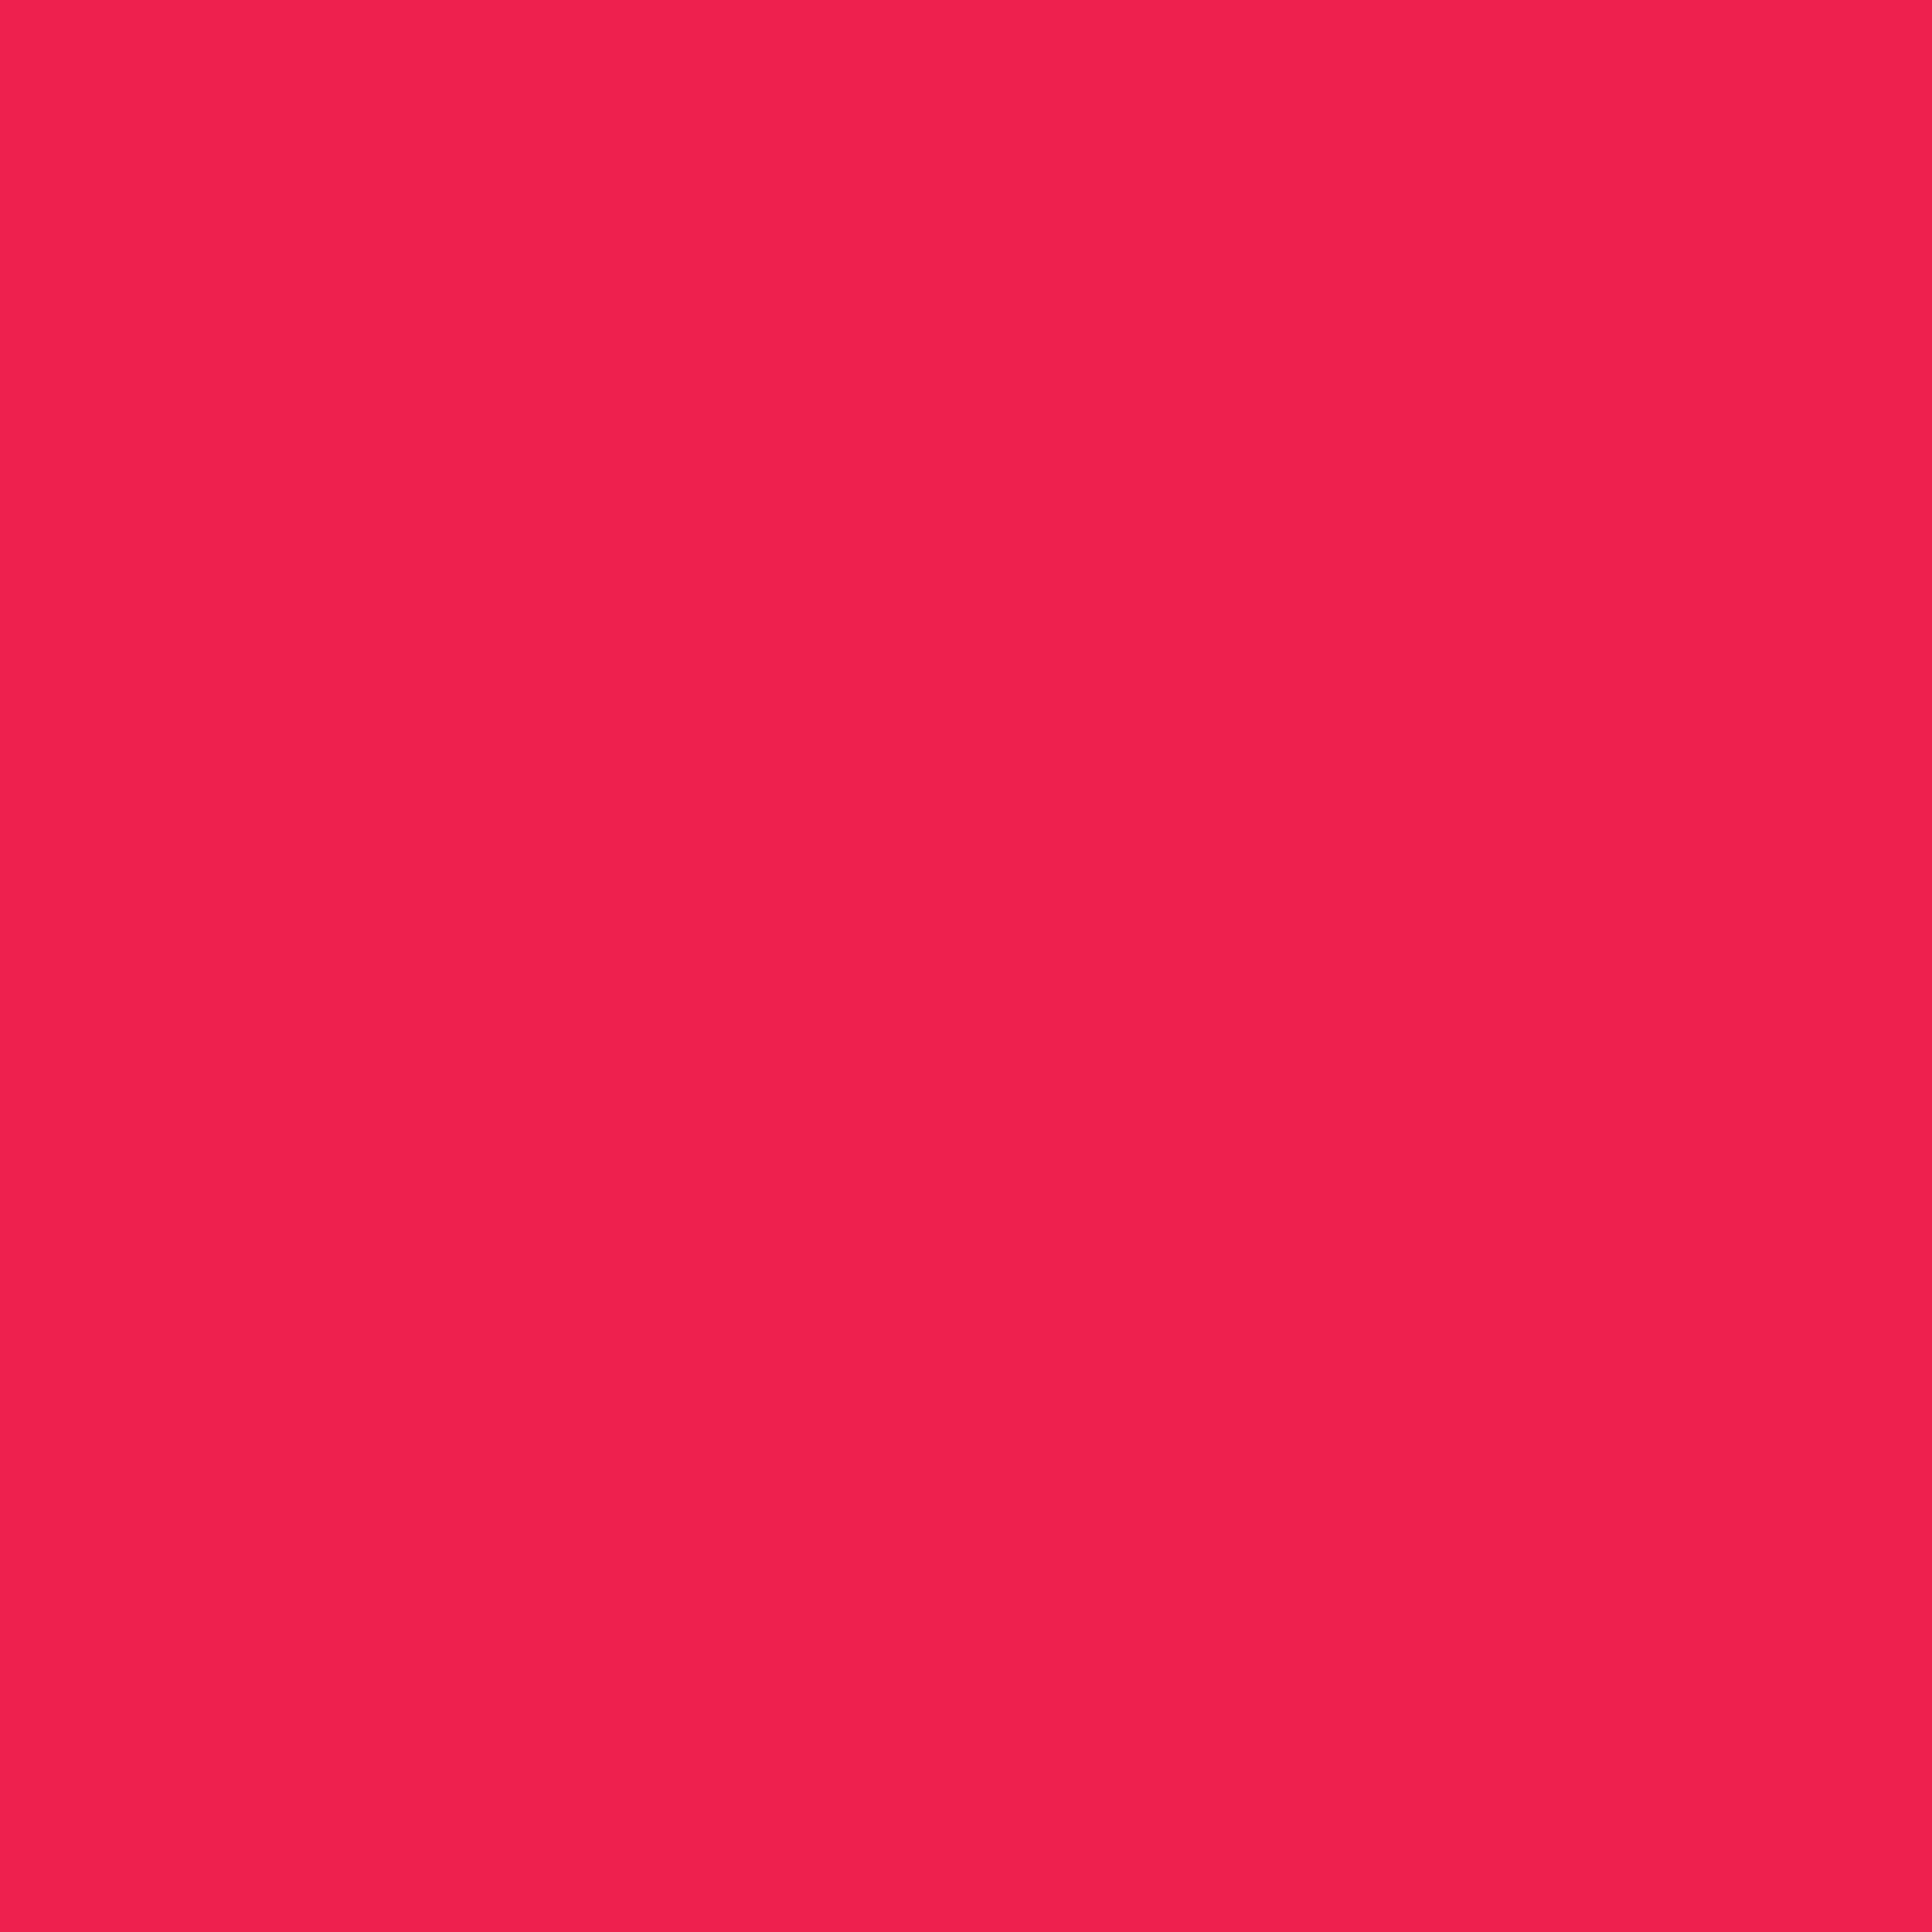 2732x2732 Red Crayola Solid Color Background